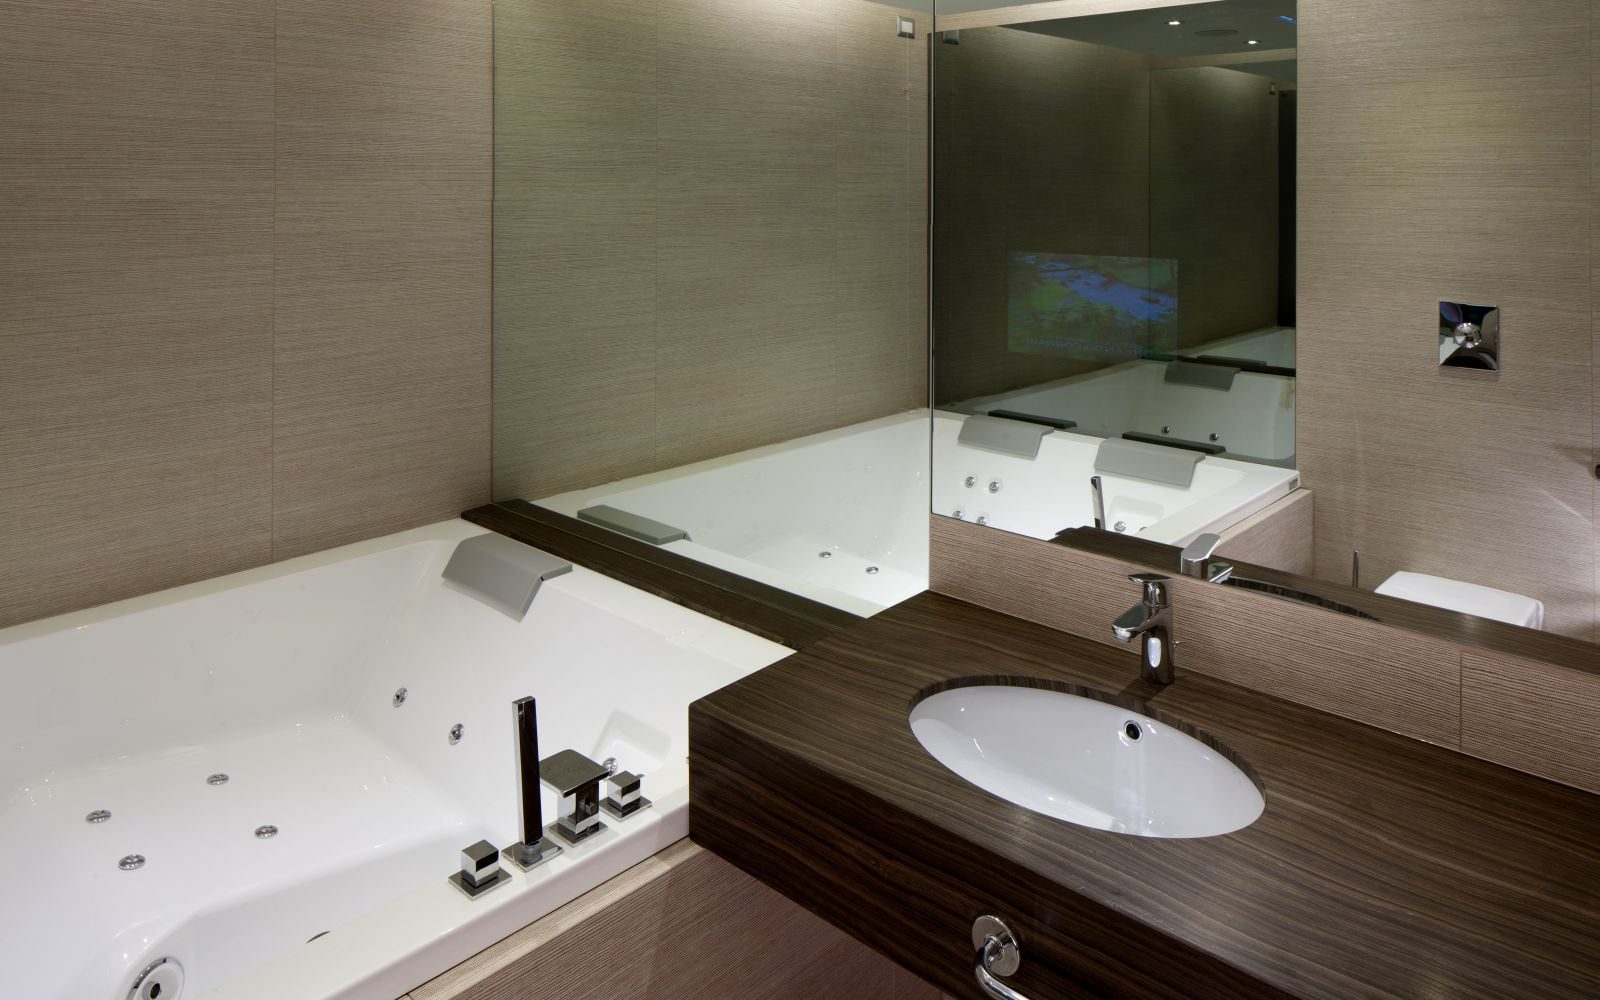 Cellule Bagno - Bathroom Pods